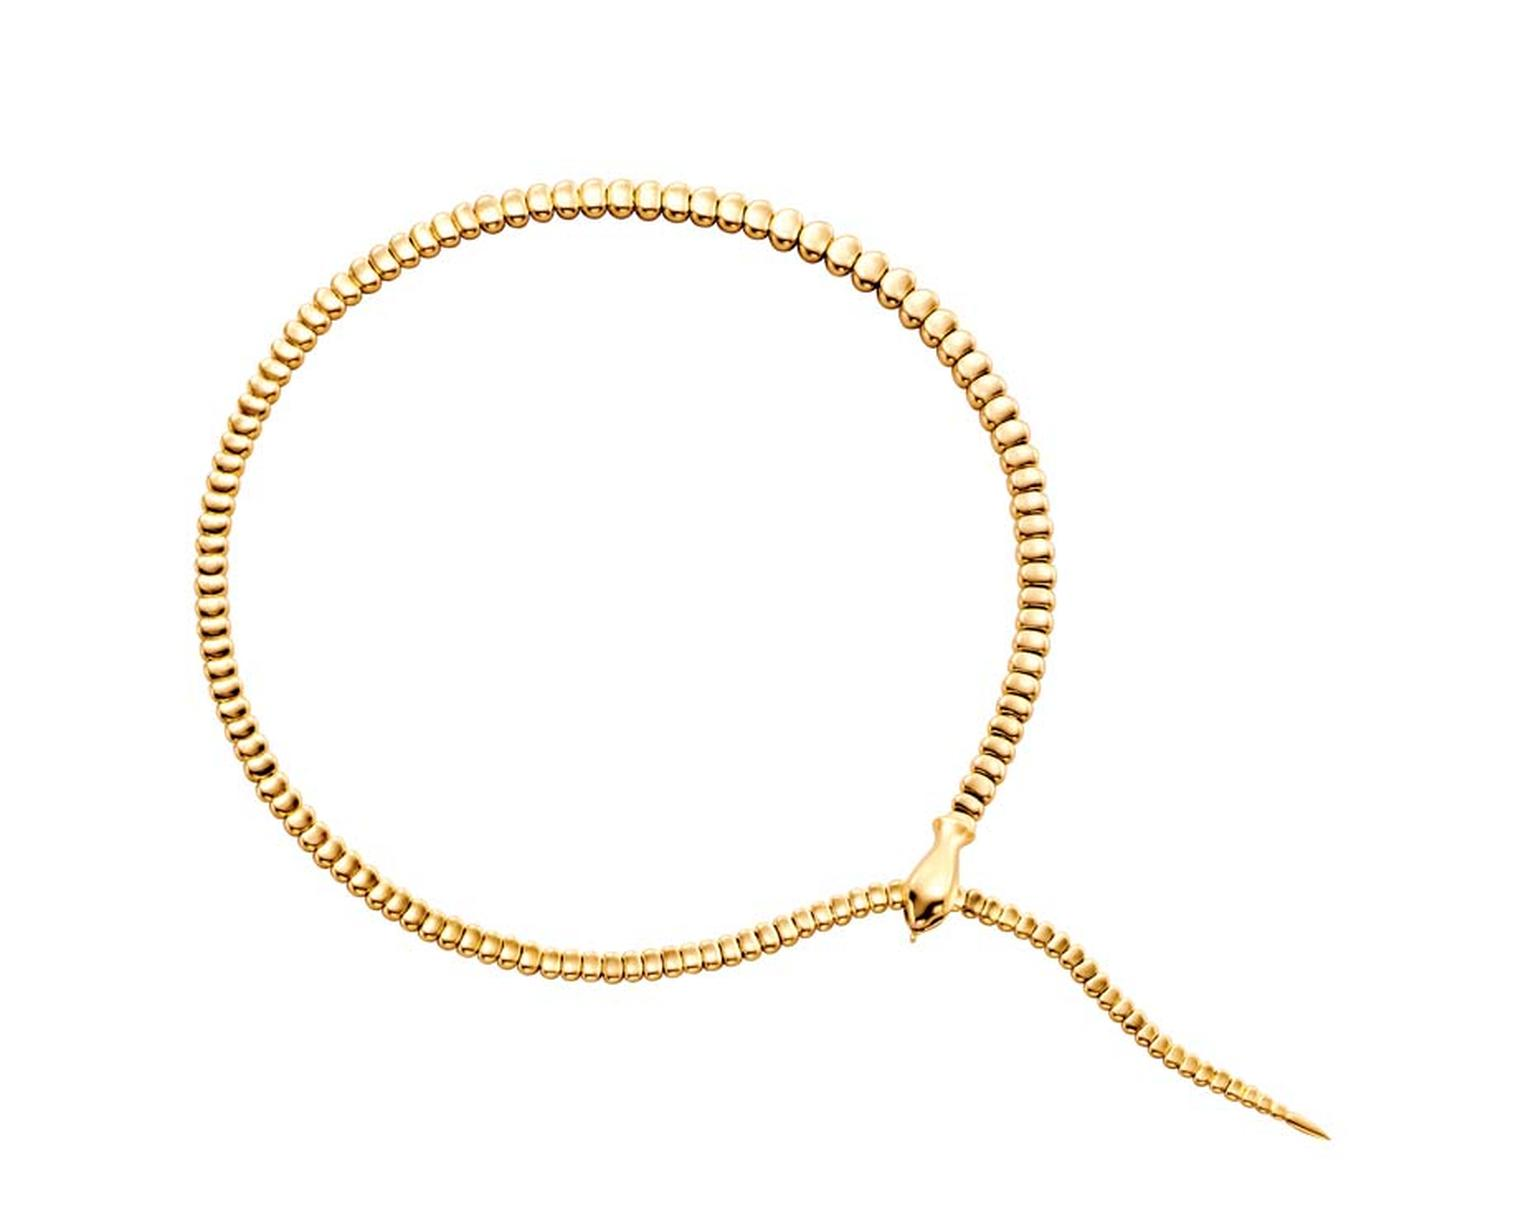 Elsa Peretti for Tiffany Snake necklace in yellow gold.